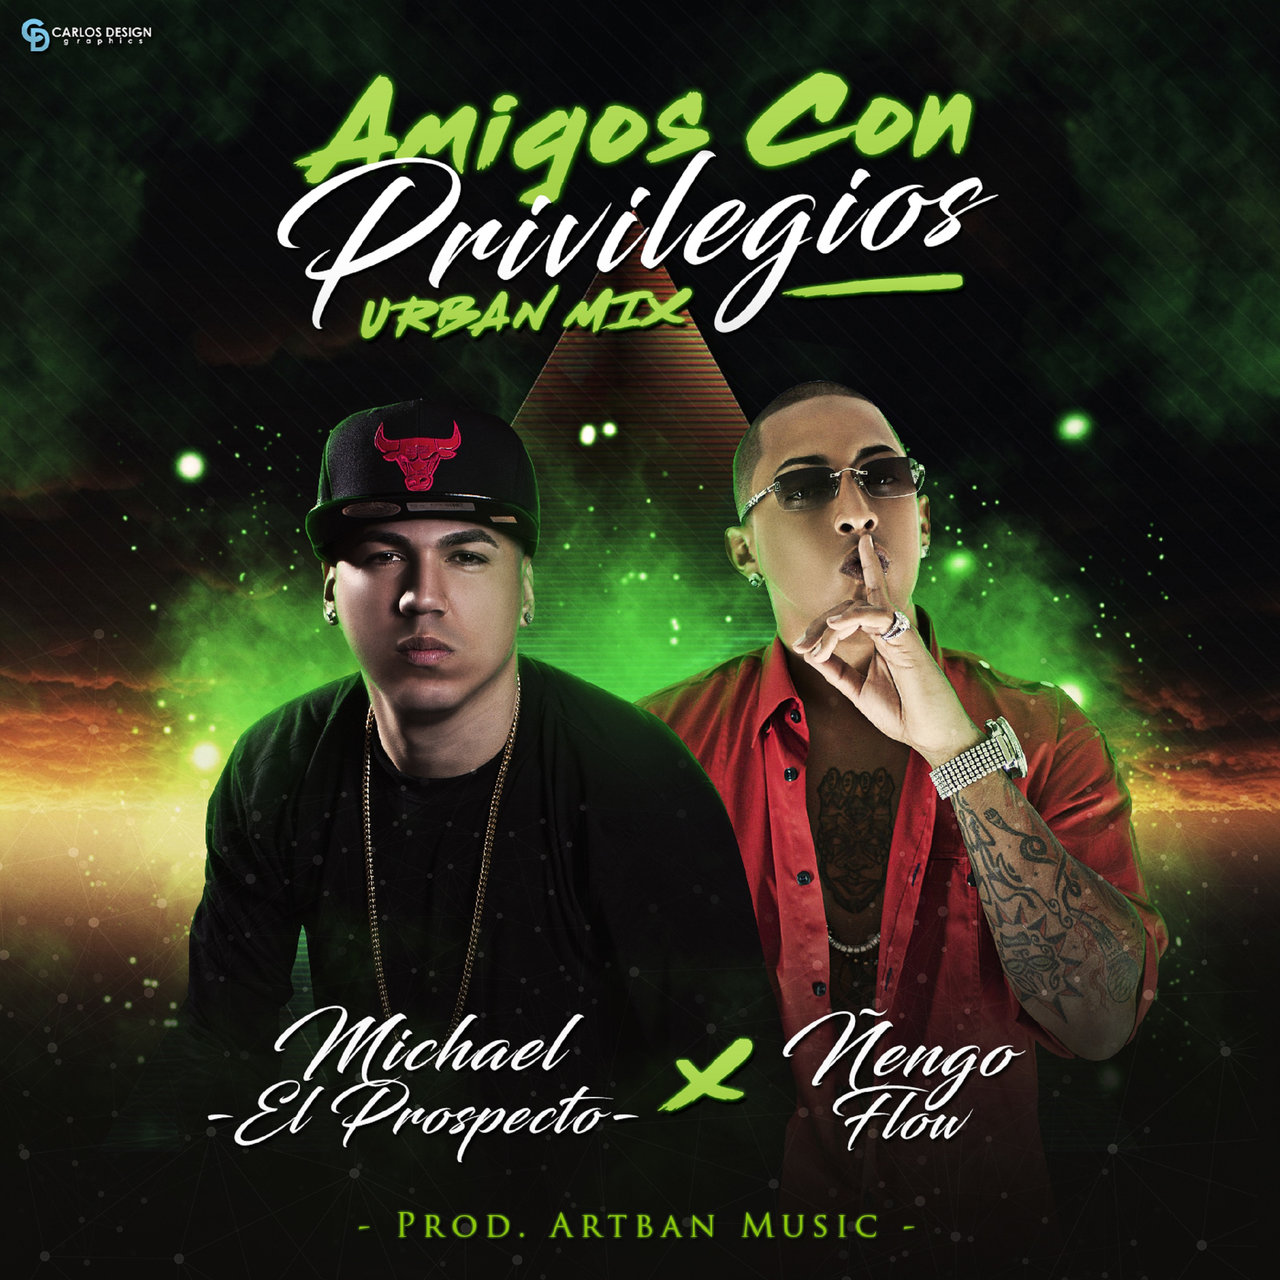 Amigos Con Privilegios (Urban Mix)